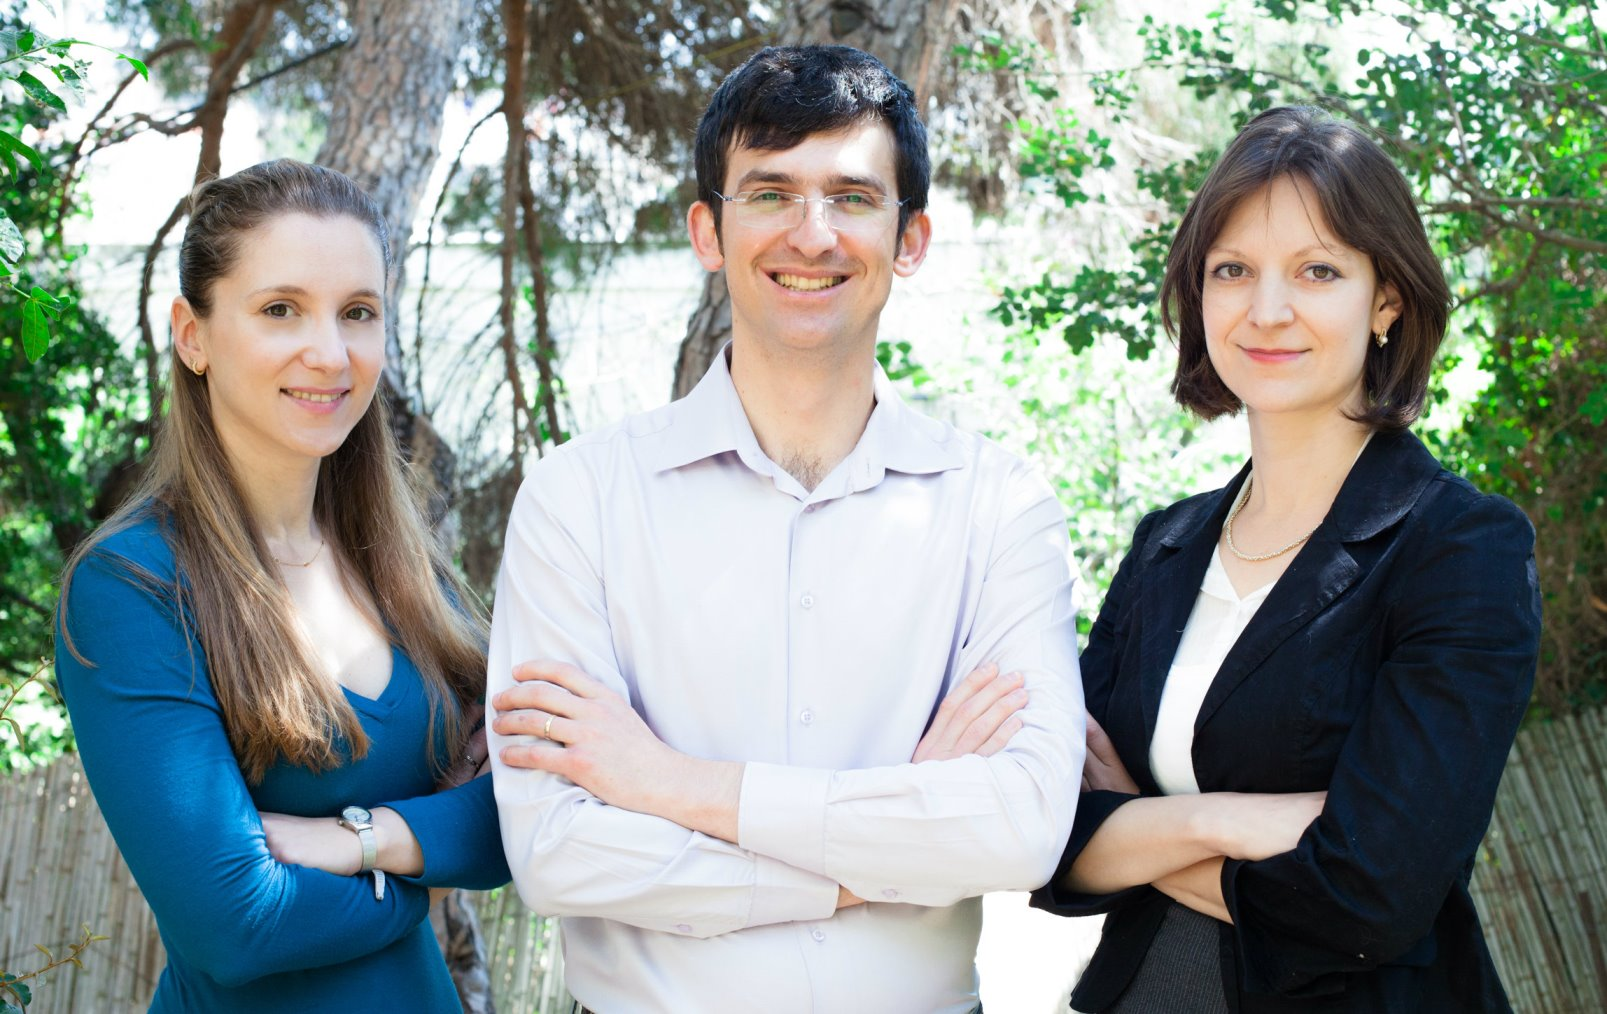 From left, LabSuit cofounders Ira Blekhman, Alex Domeshek and Helen Rabinovich. Photo courtesy of Technion Spokesperson's Office